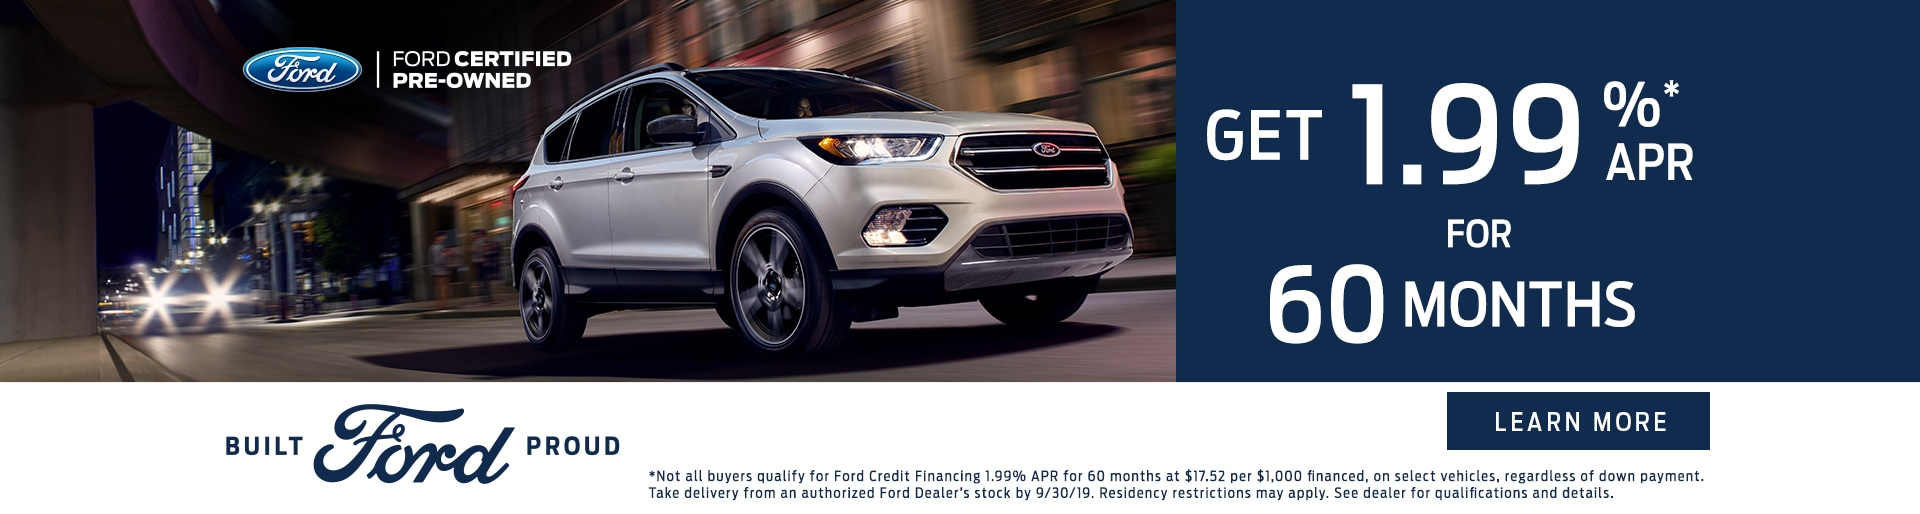 Your Local Ford Dealer in Greensburg, PA  Ford Trucks and